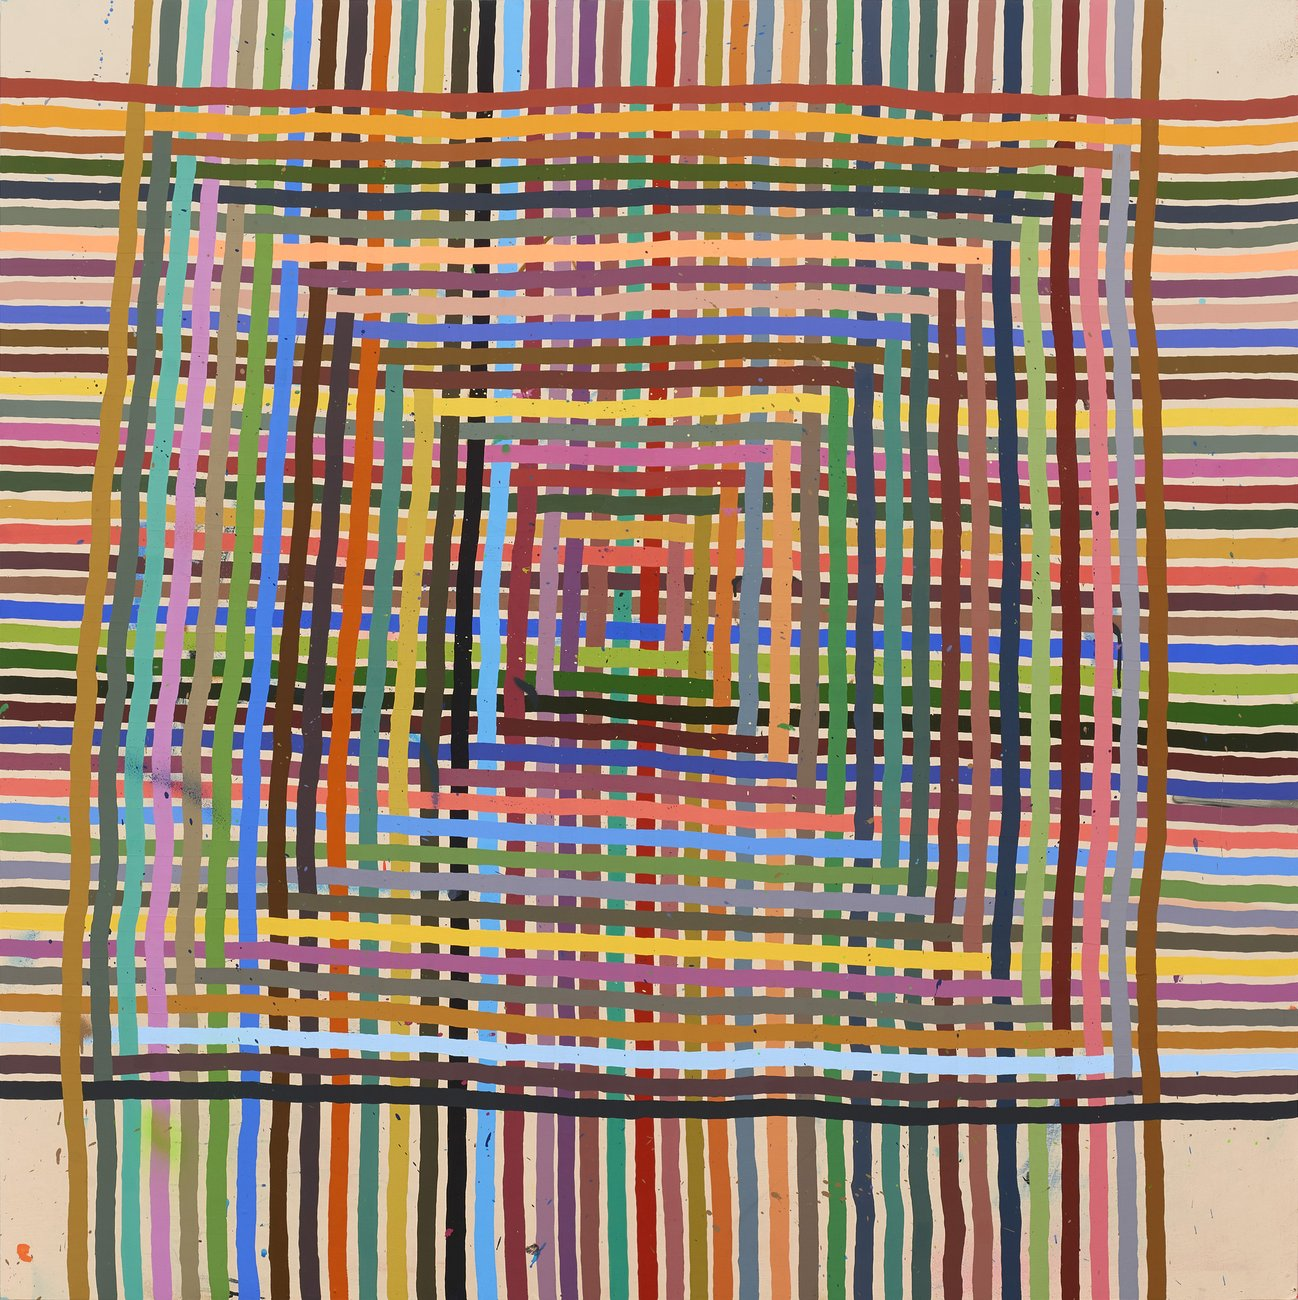 Interwoven colored stripes against a beige background